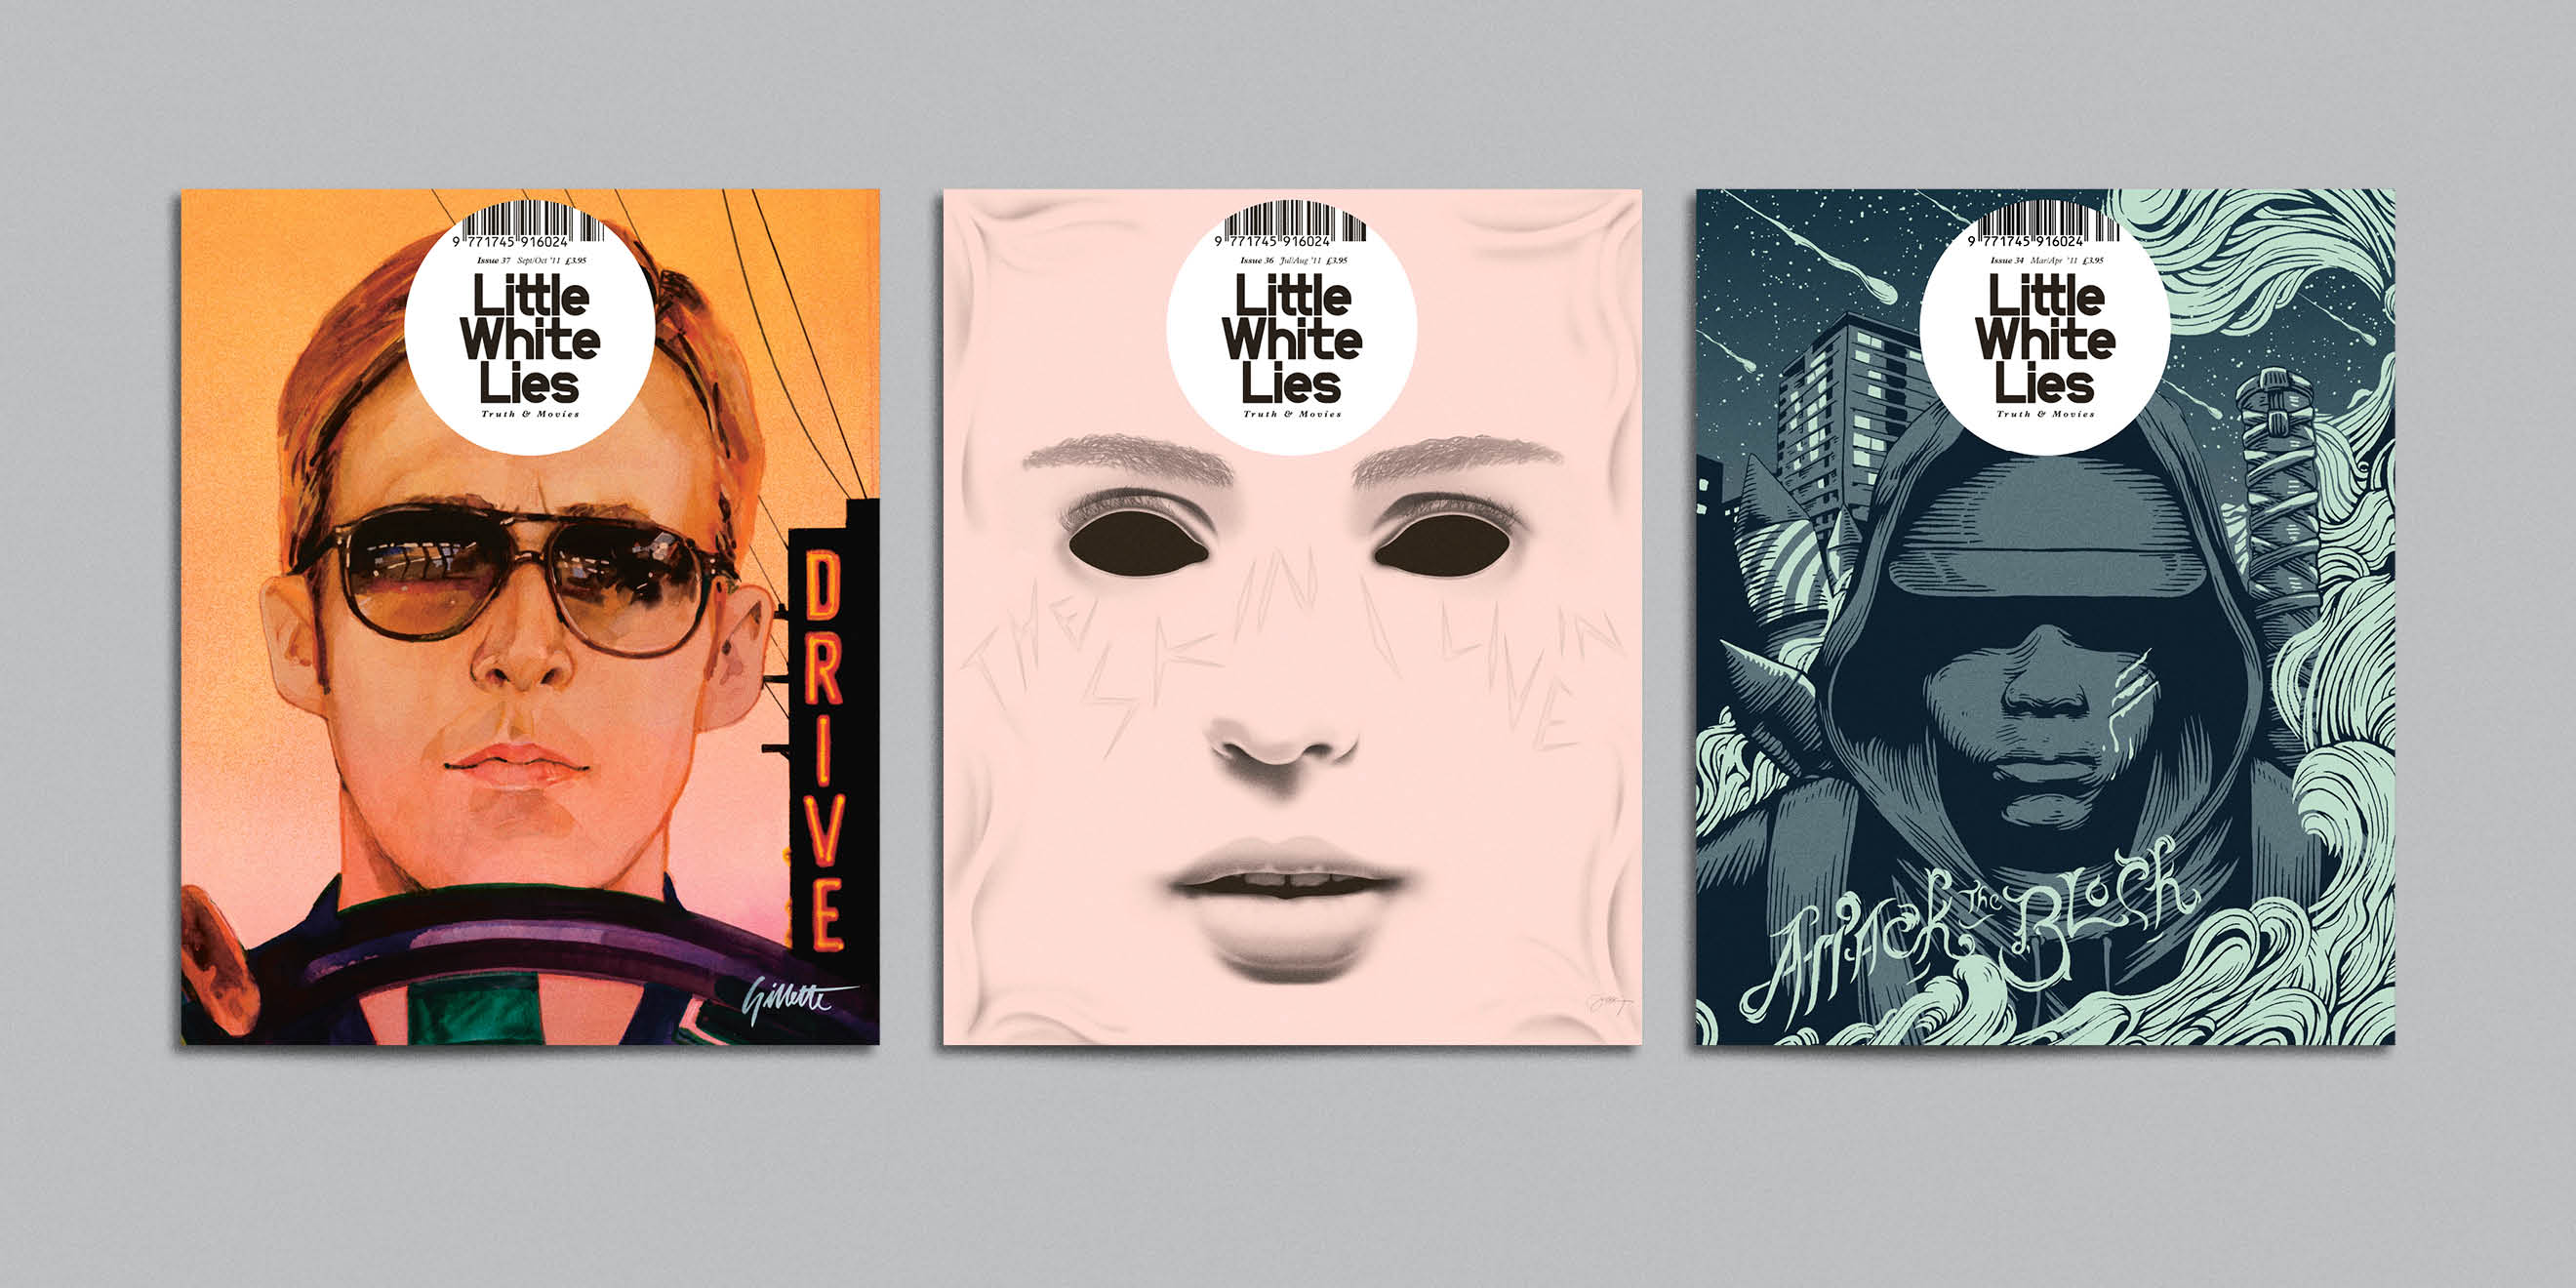 Little White Lies movie magazine illustrated covers - Drive, The skin I live in, Attack the Block